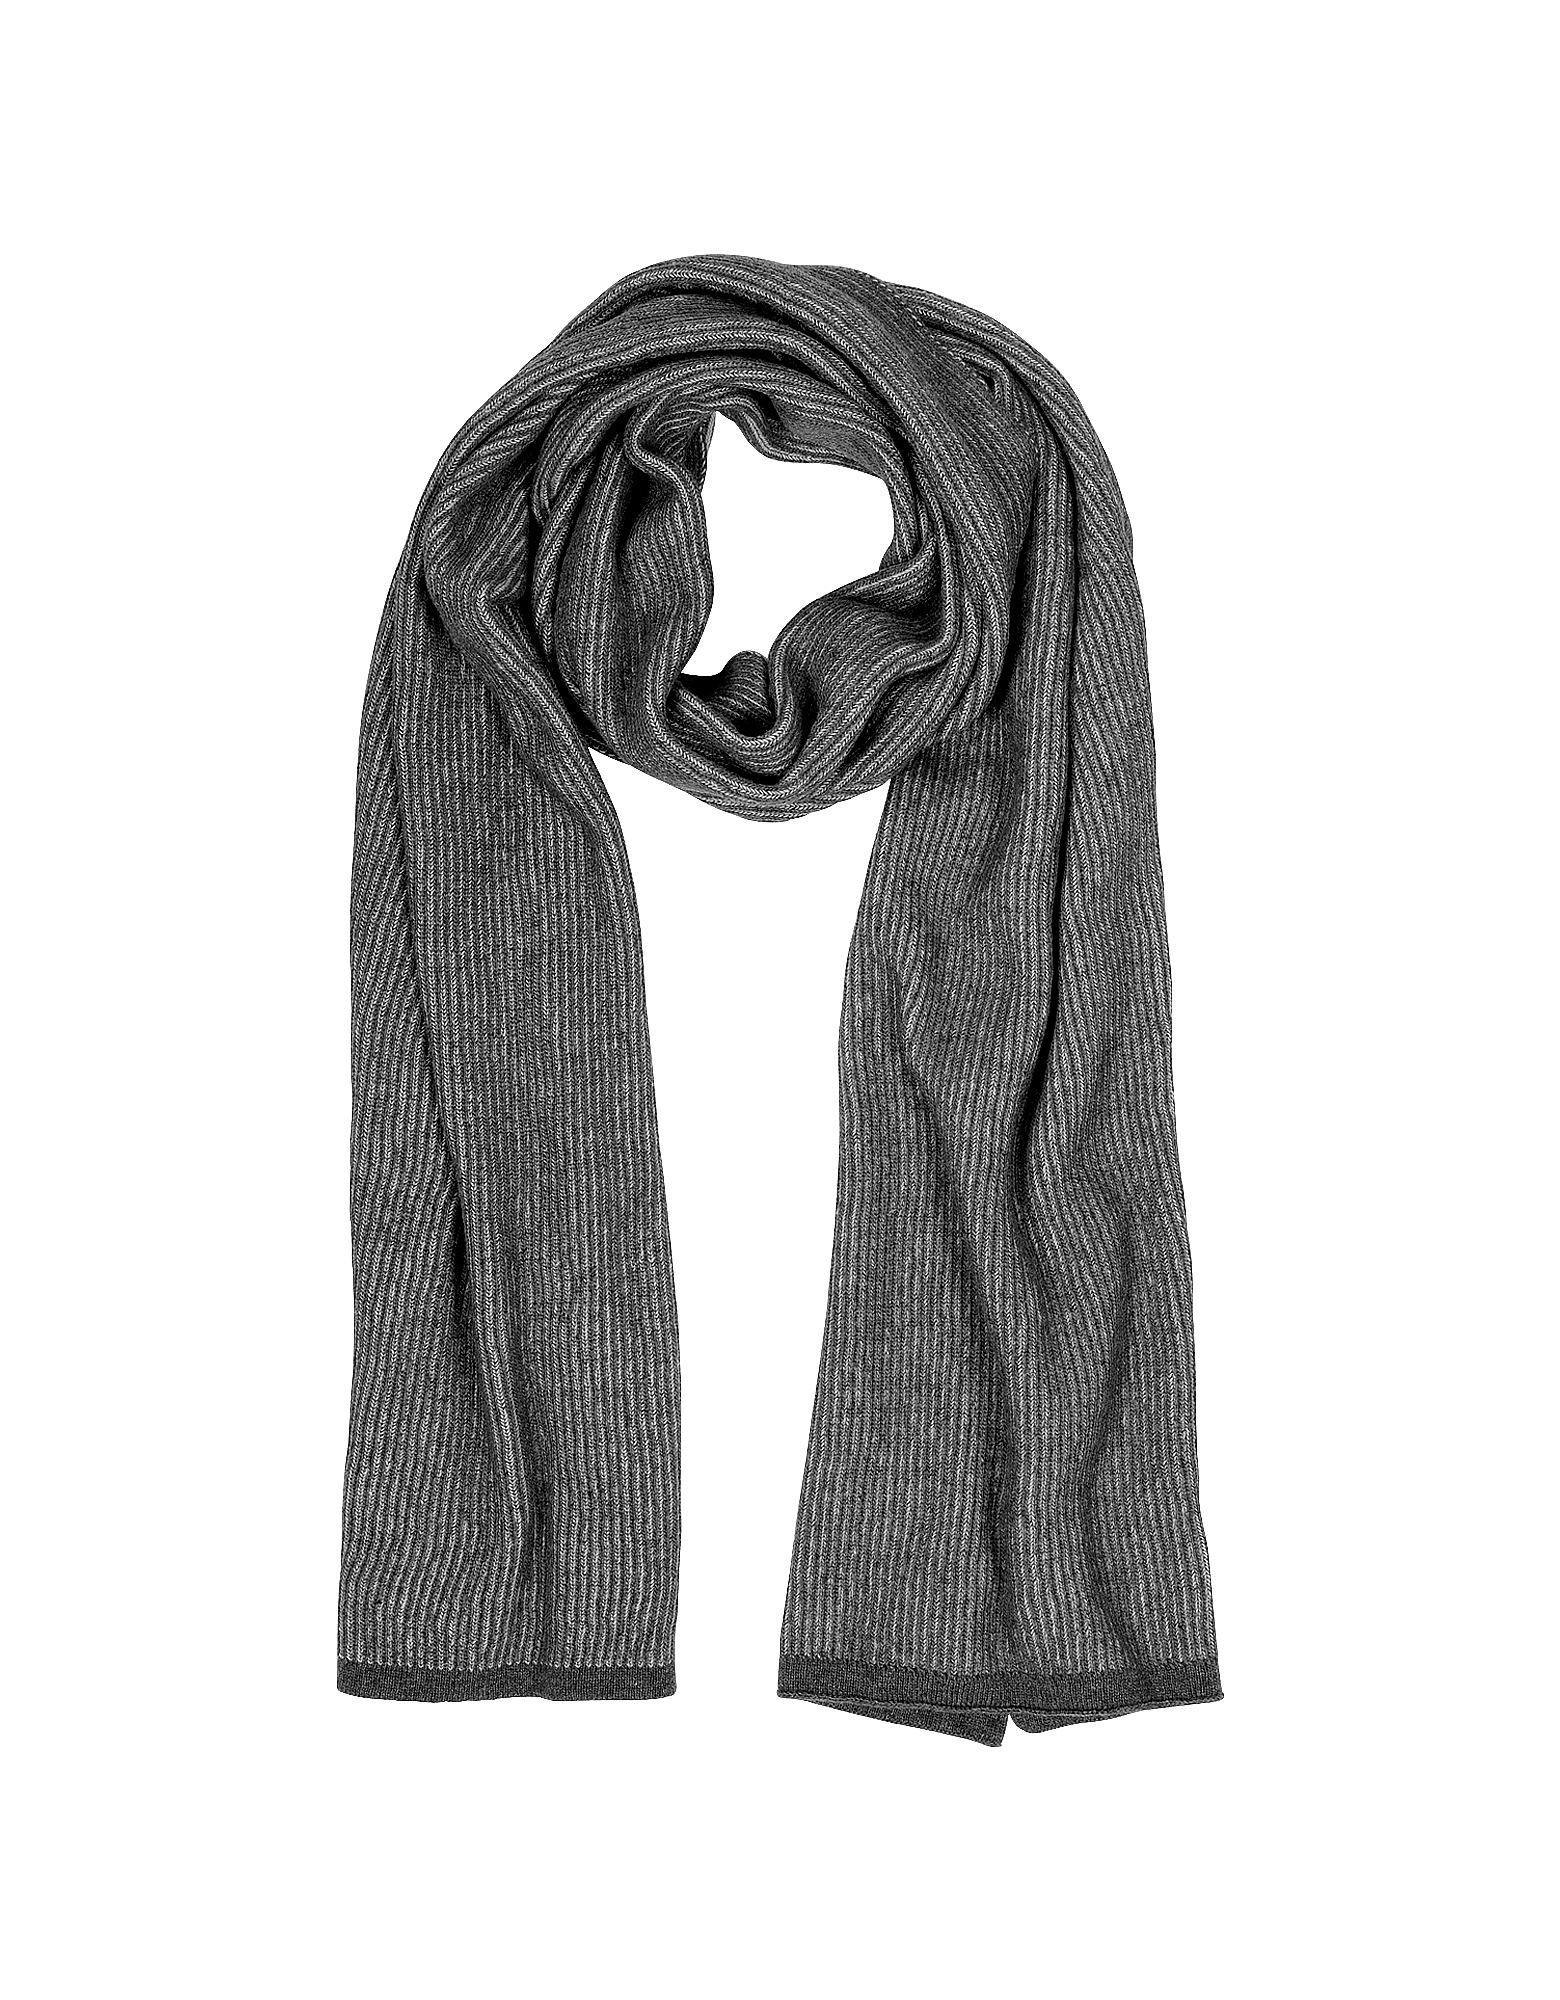 Mila Schon Long Scarves, Gray/Black Stripe Wool Blend Long Scarf